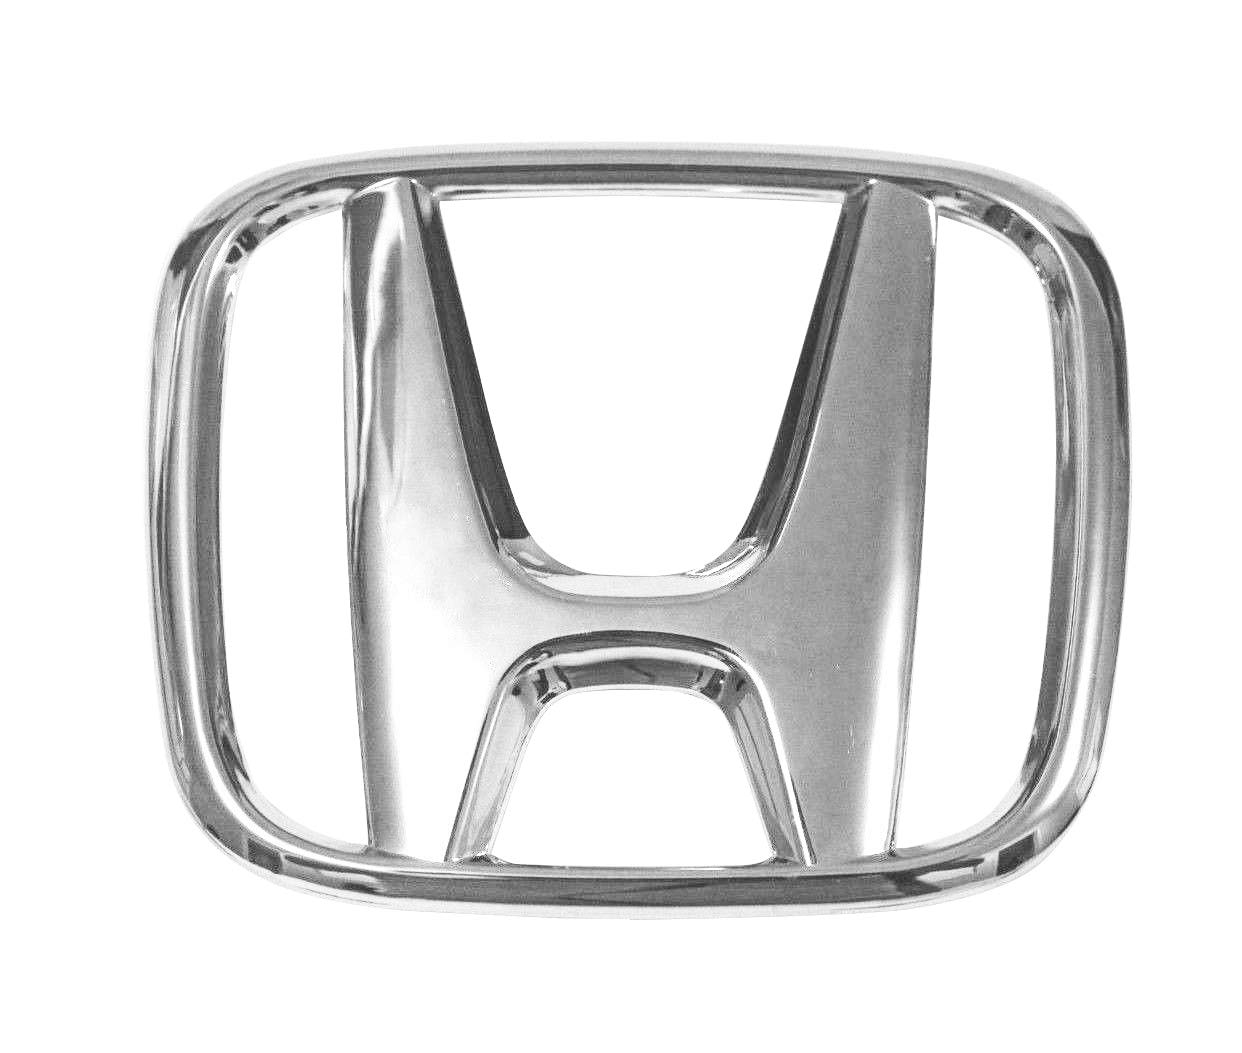 Noa Store Replacement Emblem for Honda Accord Front Grill H Emblem 2008 2009 2010 2011 2012 2013 Decoration Car Size 4.5 X 3.5 Inches